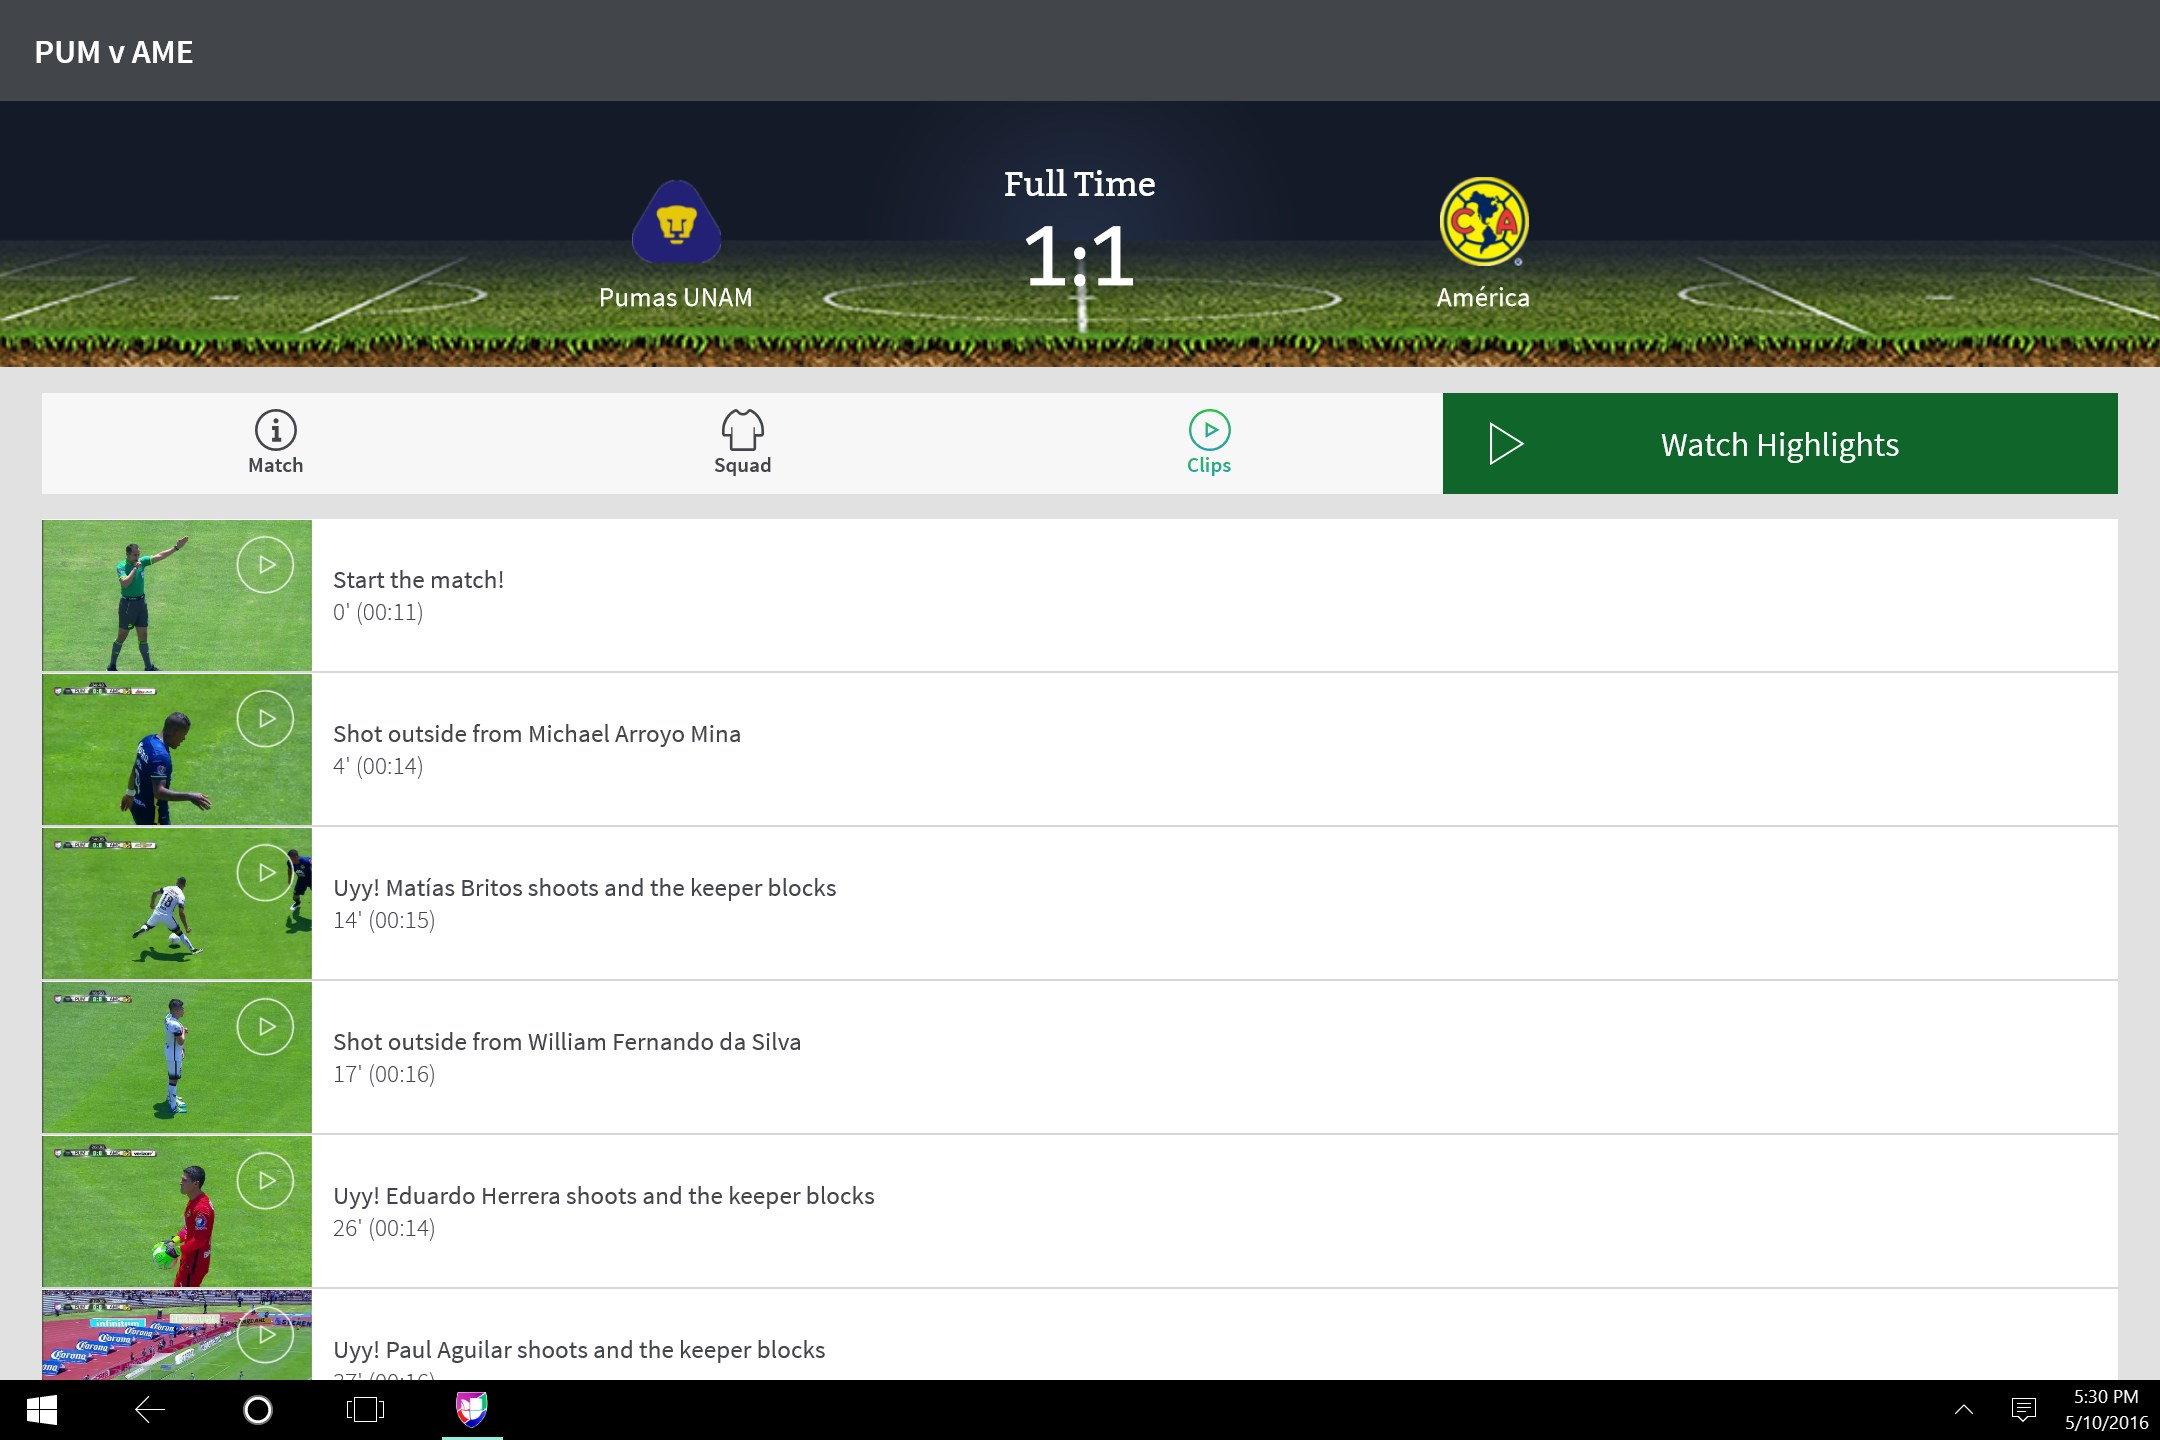 UDN TV Univision Deportes app now available for download from Windows Store - MSPoweruser